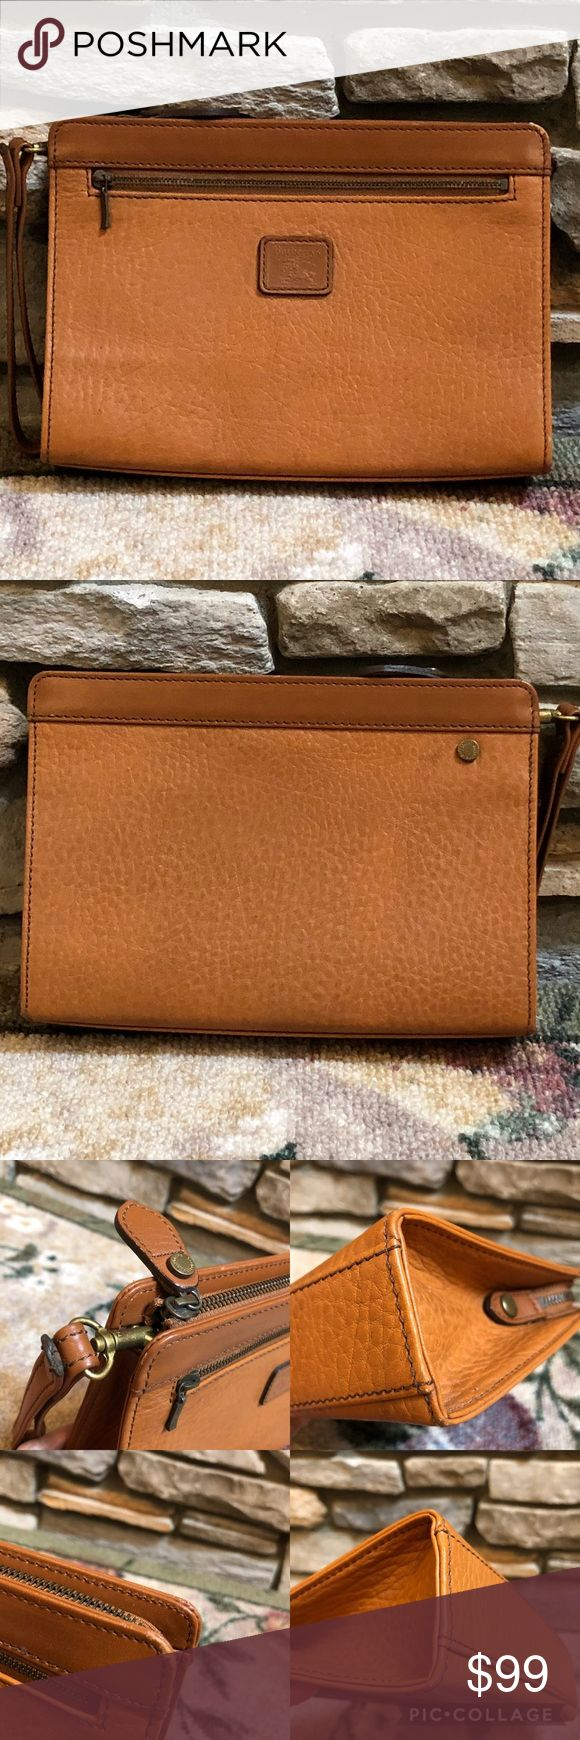 Vintage Burberrys Clutch Vintage Vintage  Authentic Burberrys Label Tag  Leather Brown  Preowned  Has signs of wear  Please check all photos  Very Good Condition  Size L 9-1/2 x H 6-1/2 x D 2-1/4 inches  Ready to use Burberry Bags Clutches & Wristlets